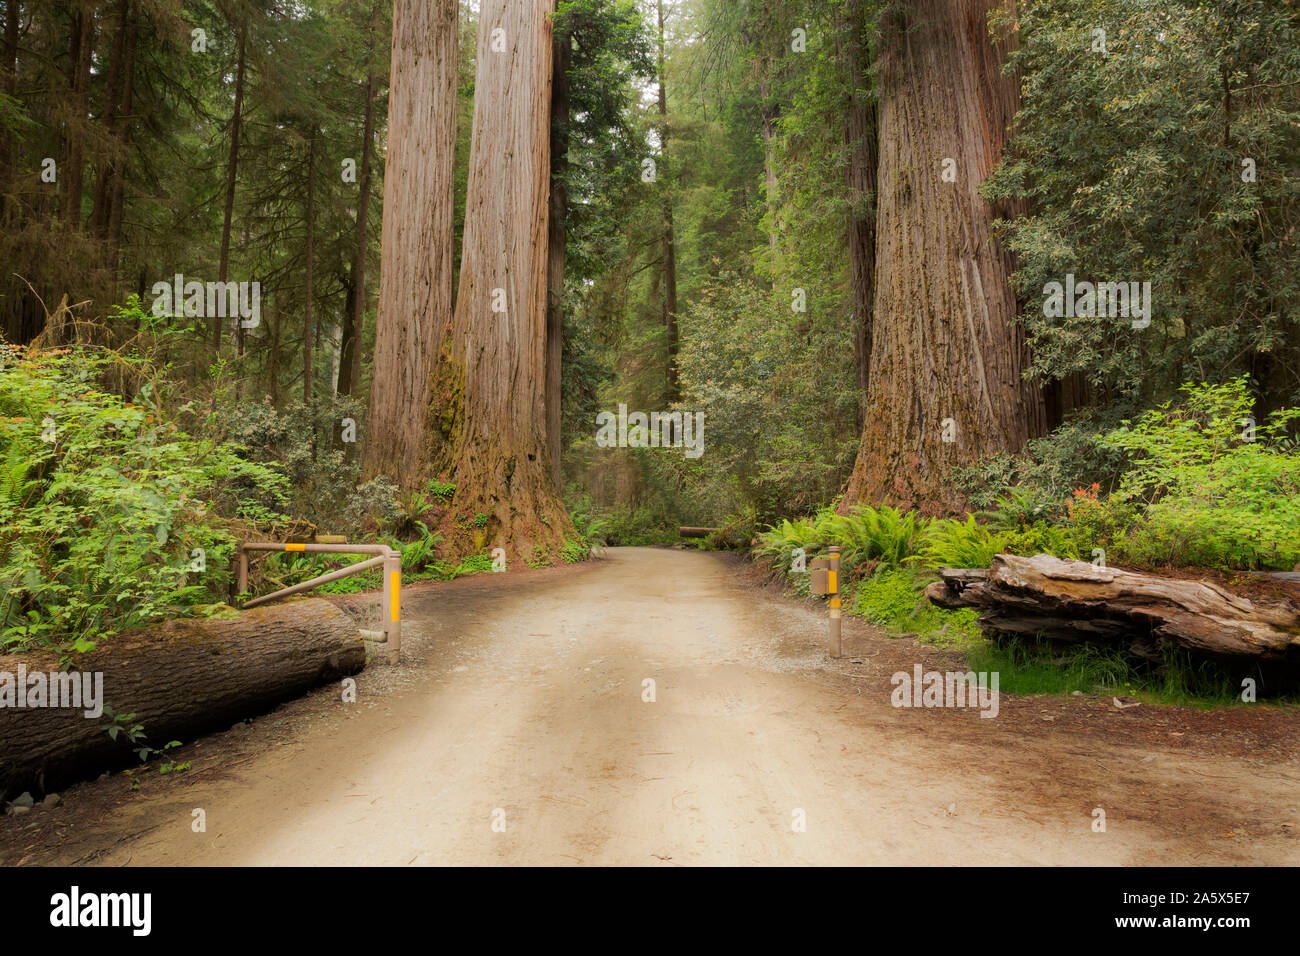 CA03751-00...CALIFORNIA - Redwood trees lining the Howland Road in Jedediah Smith Redwoods State Park; part of the Redwoods National and State Parks. Stock Photo